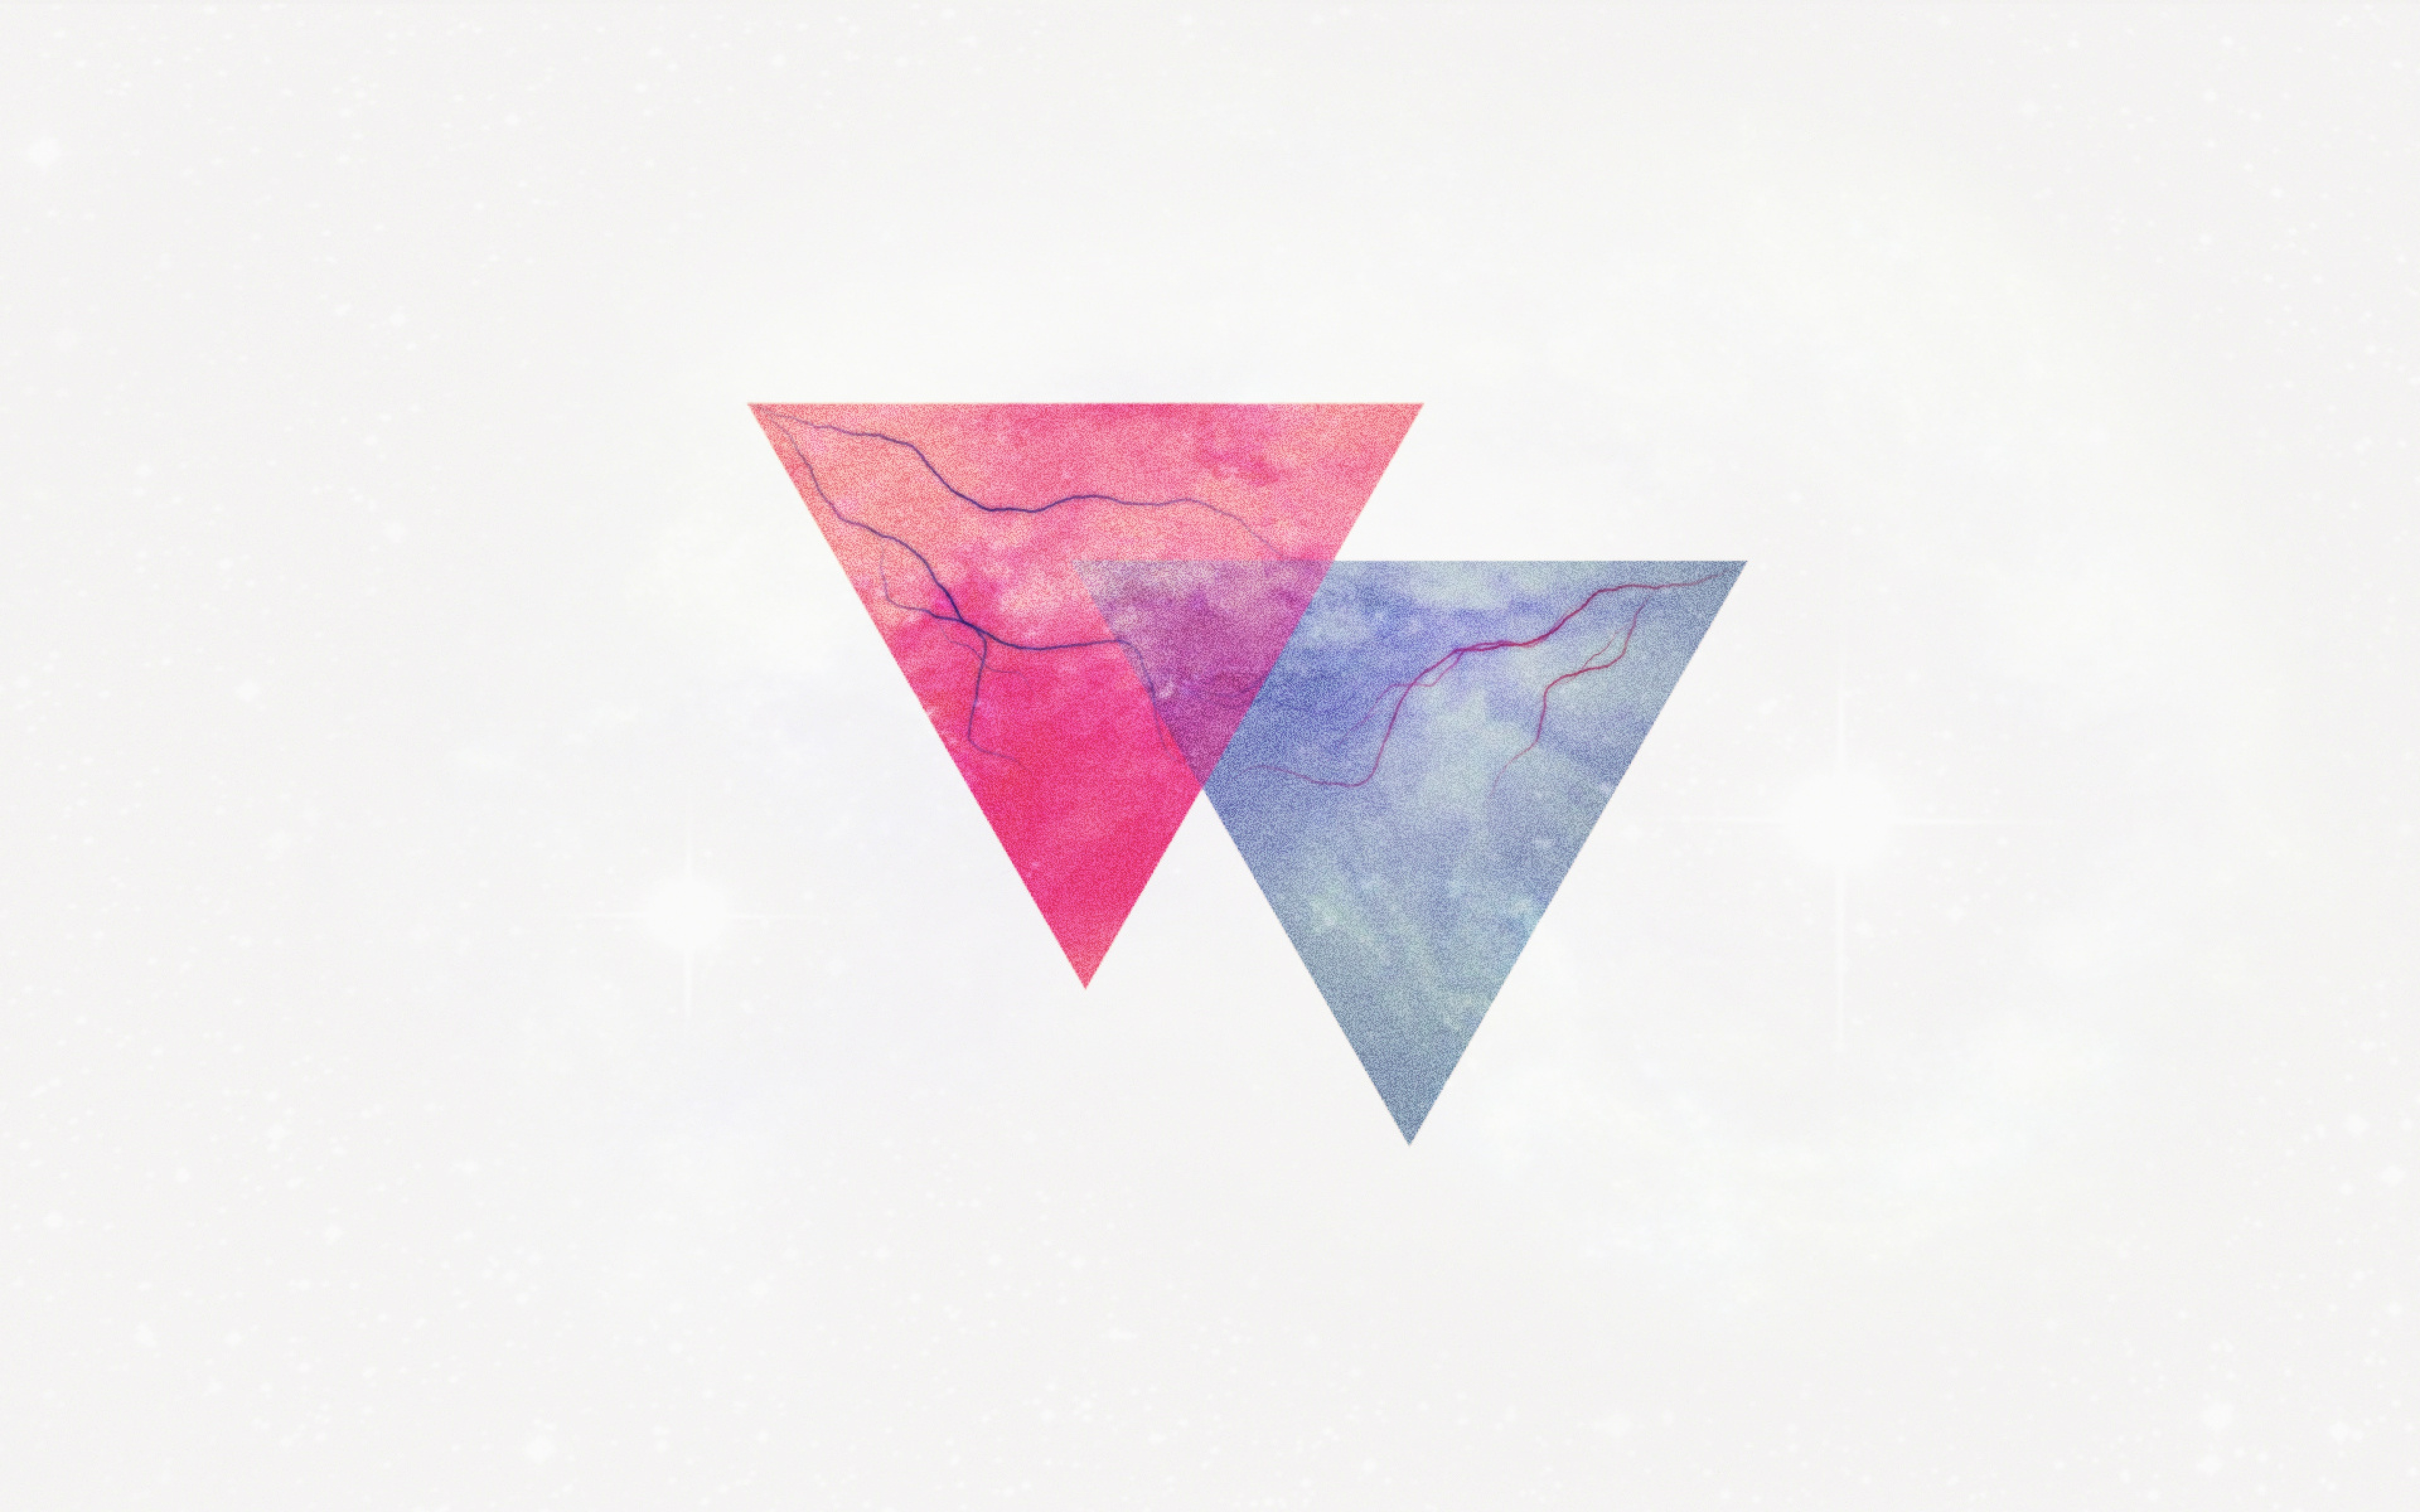 3840x2400 Wallpaper triangle, minimalism, lightning, veins